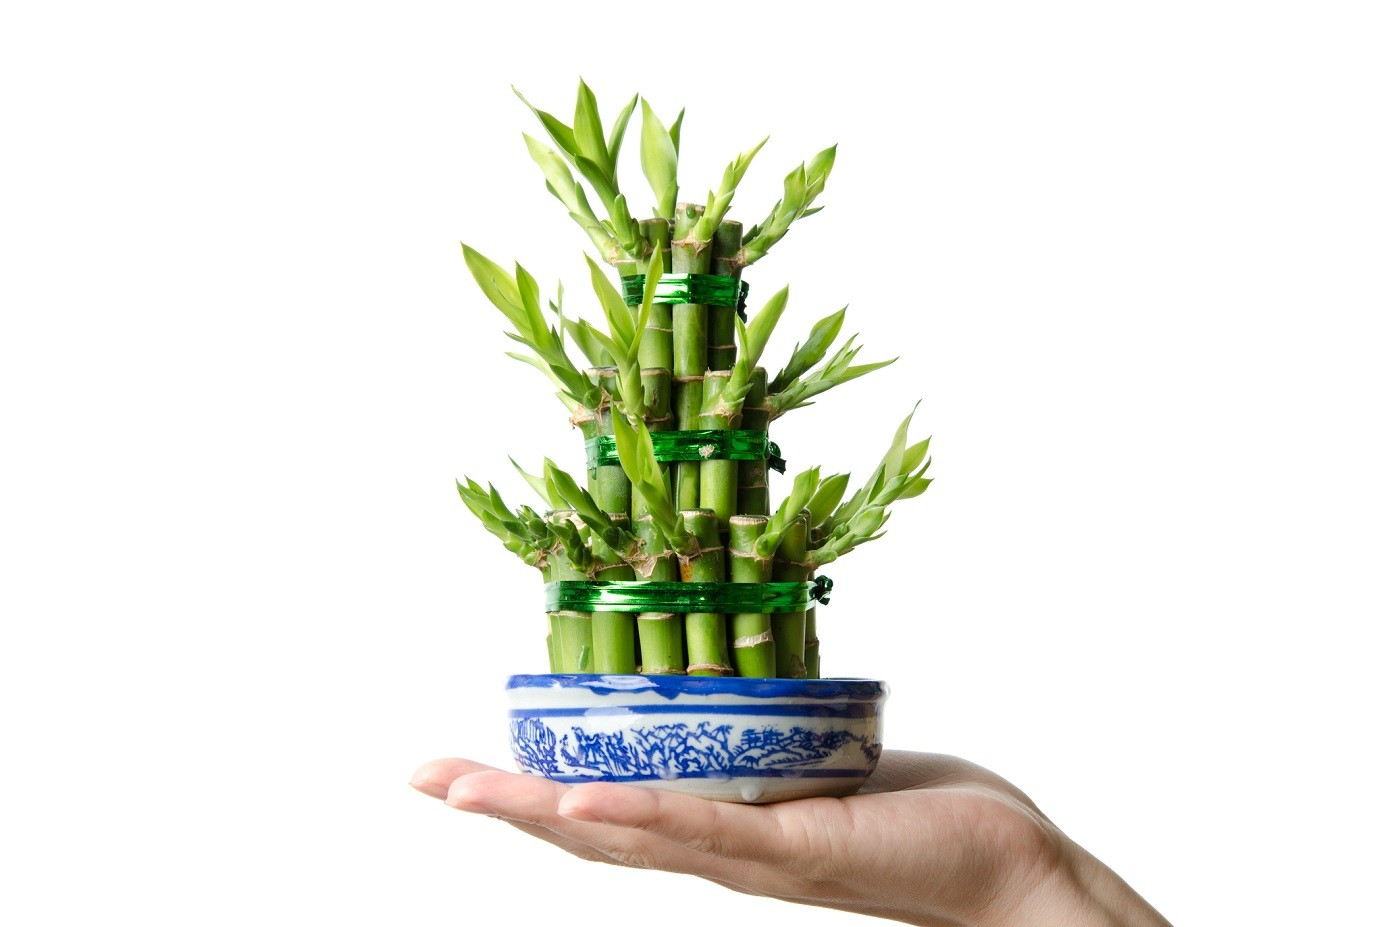 Chinese Lucky bamboo, Dracaena sanderiana, isolated (Foto: Getty Images/iStockphoto)